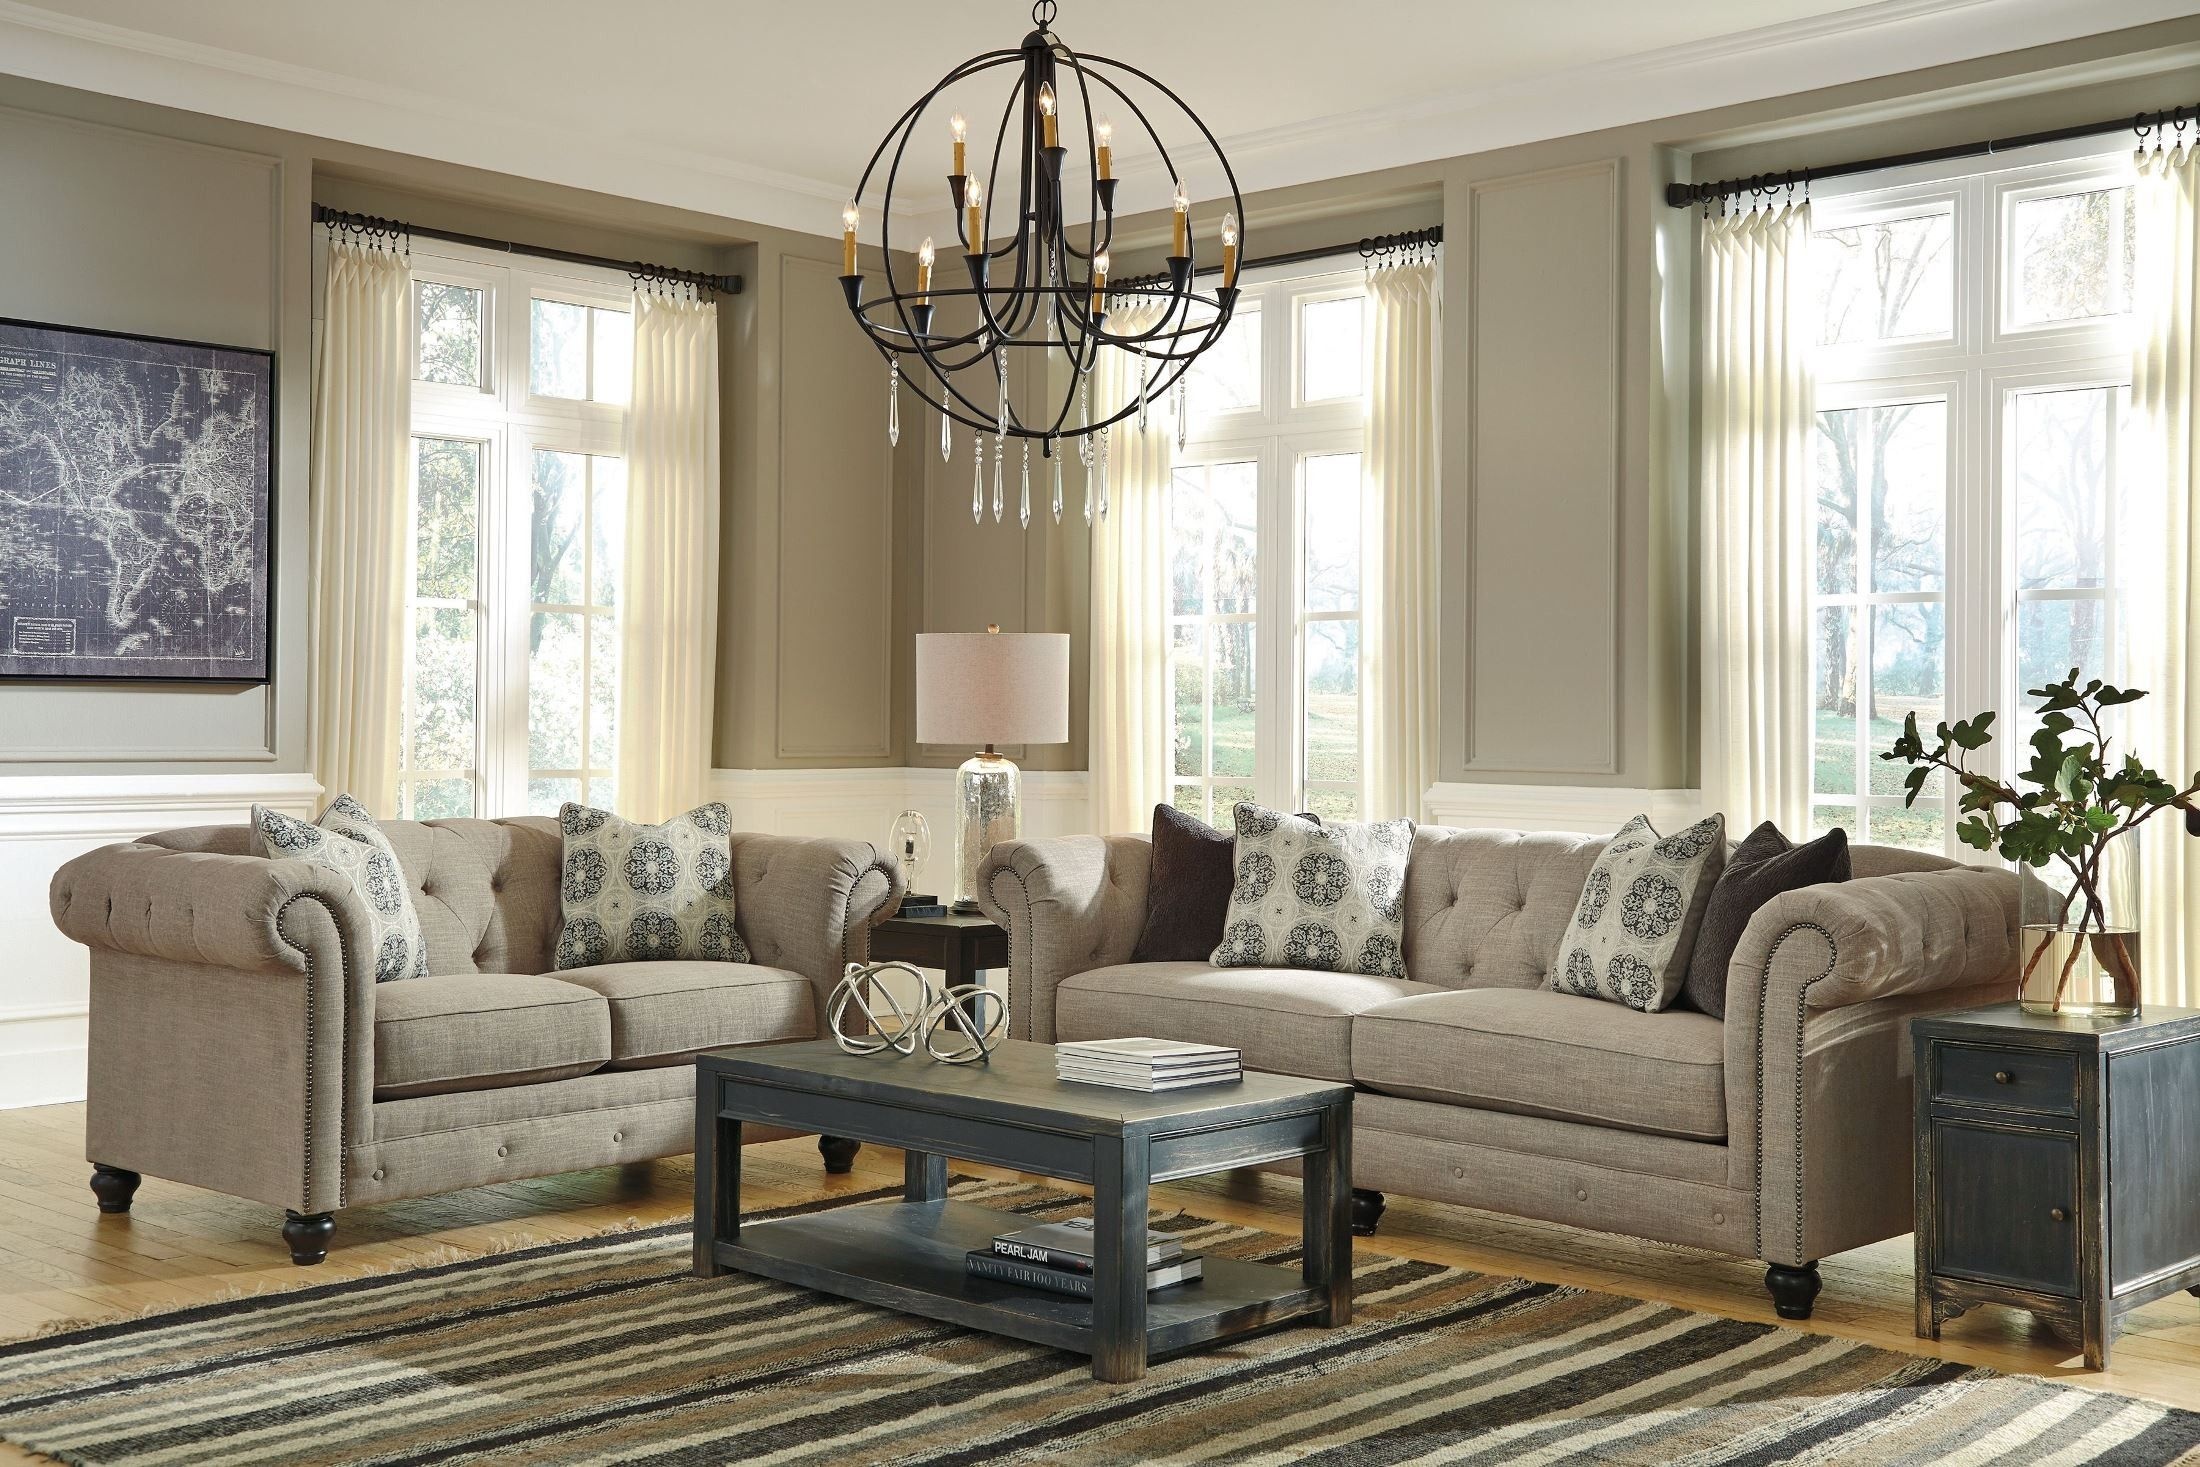 The Perfect Affordable Living Room Sofa! The Azlyn Sofa By Ashley Furniture  Will Easily Provide Your Family Room With Comfort And Style.